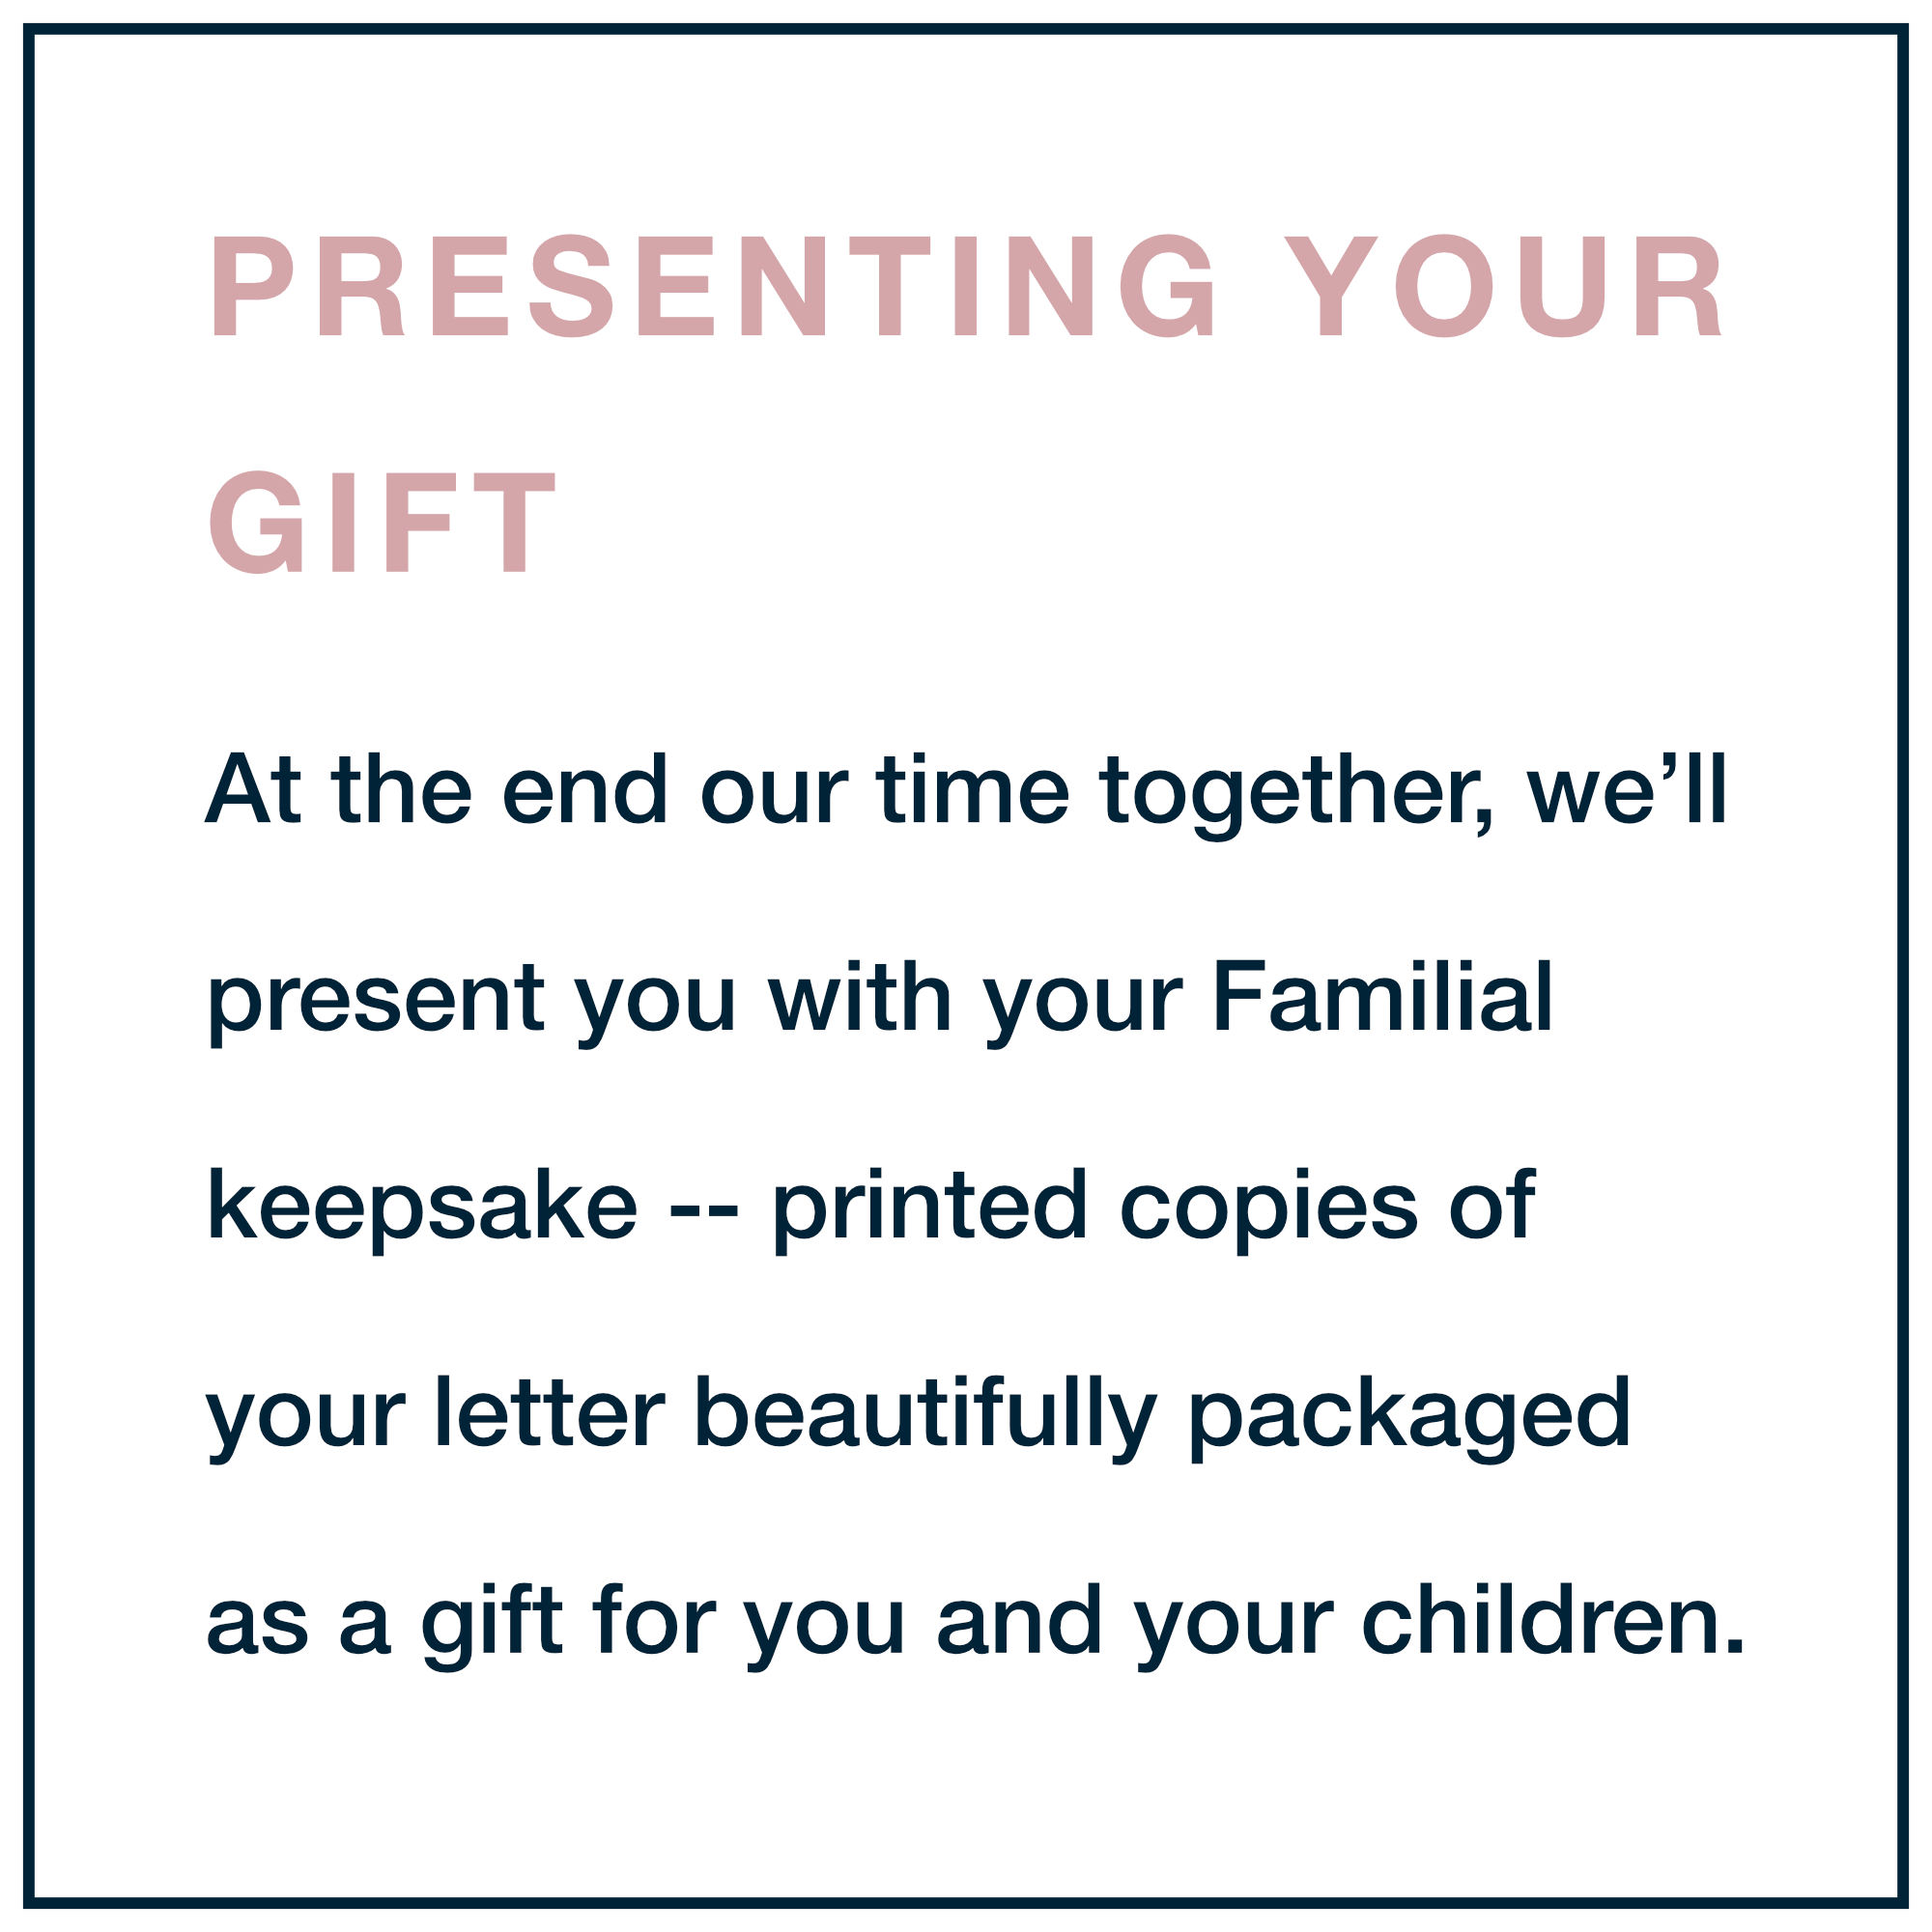 presenting your gift - familial.png